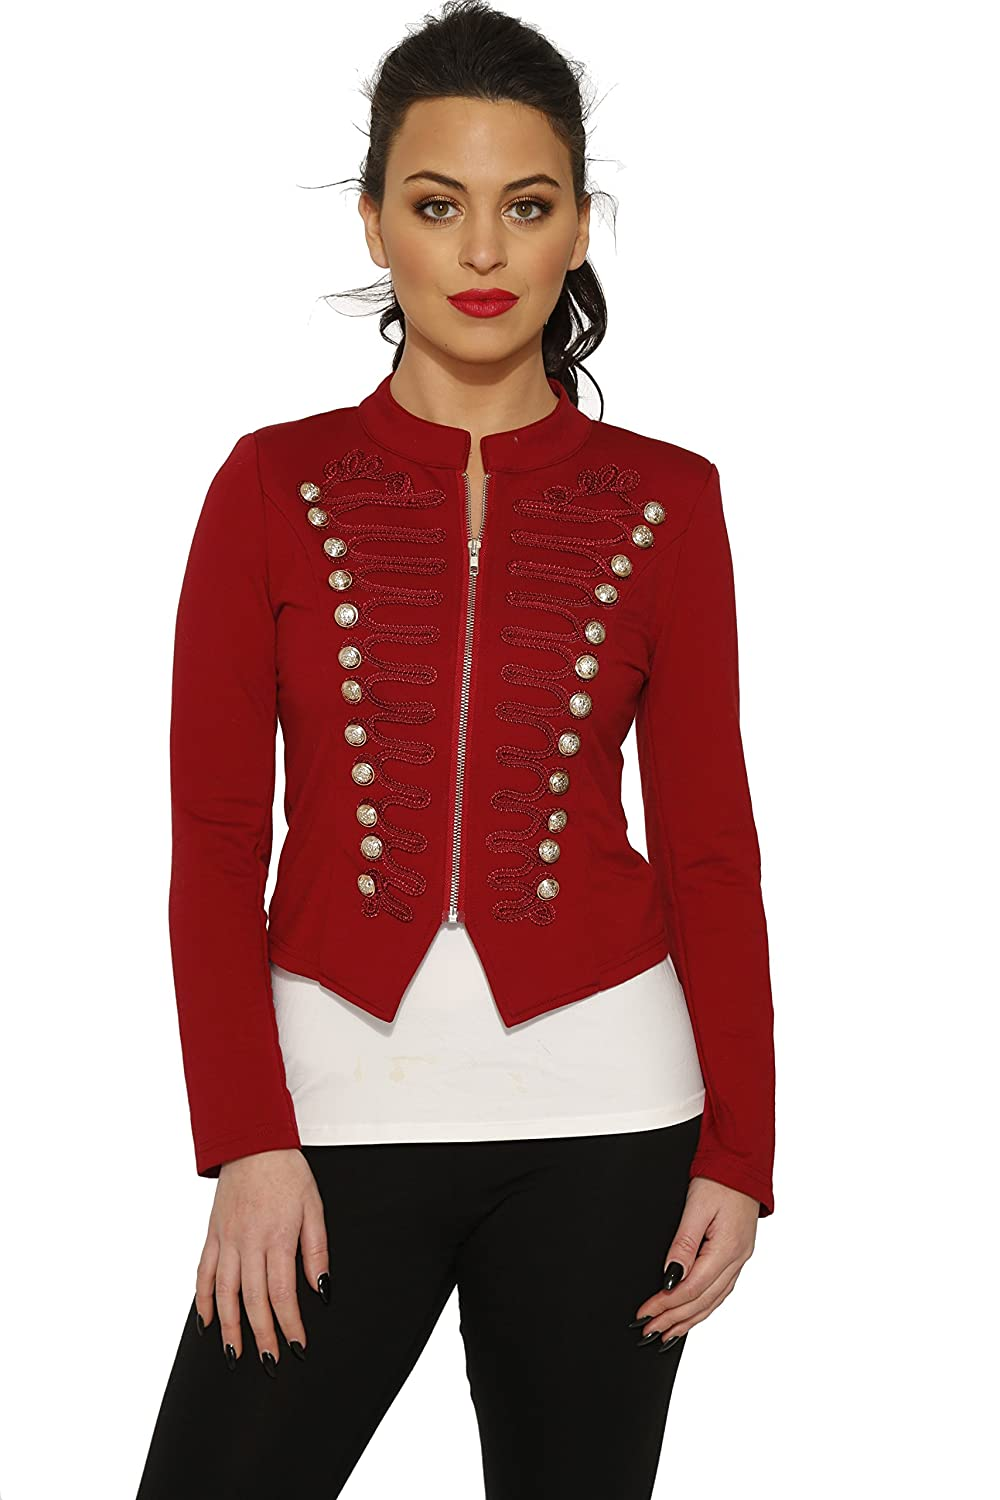 Vintage Burlesque Clothing, Costumes, Outfits Hearts & Roses Red Brigantine Jacket (Shipped from The US & US Sizes) $48.88 AT vintagedancer.com